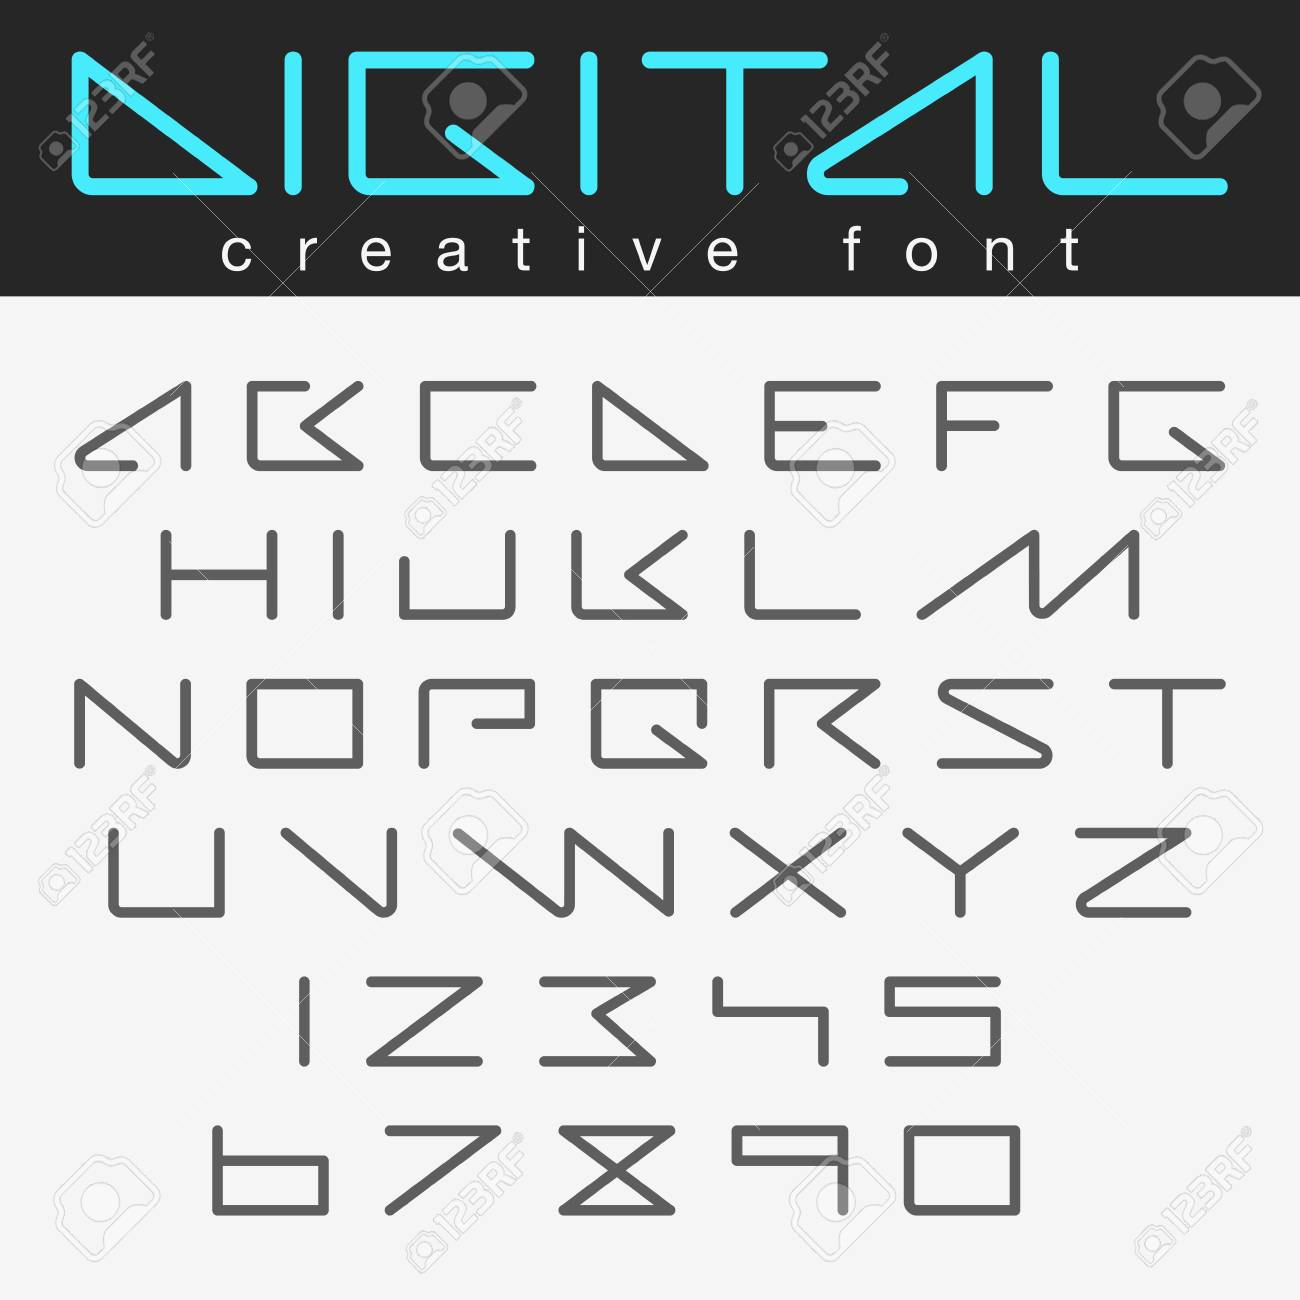 Digital Robot Futuristic Font Vector Design Robotic Future